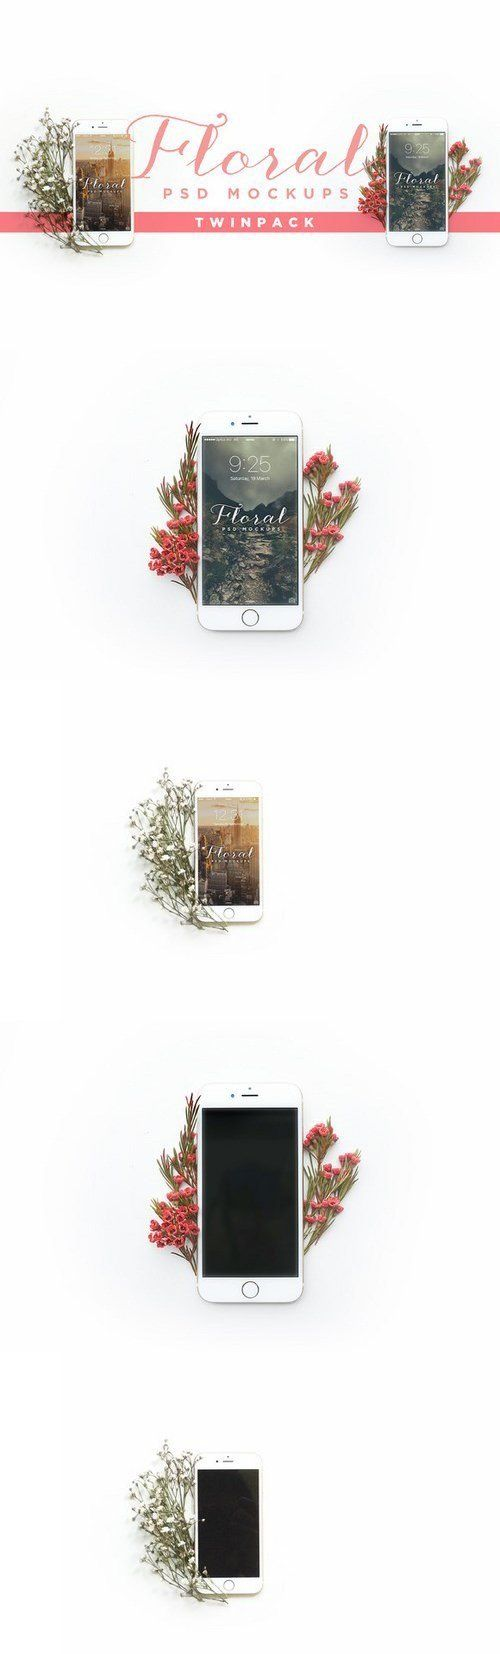 Floral iPhone Mockup Twin Pack 597314